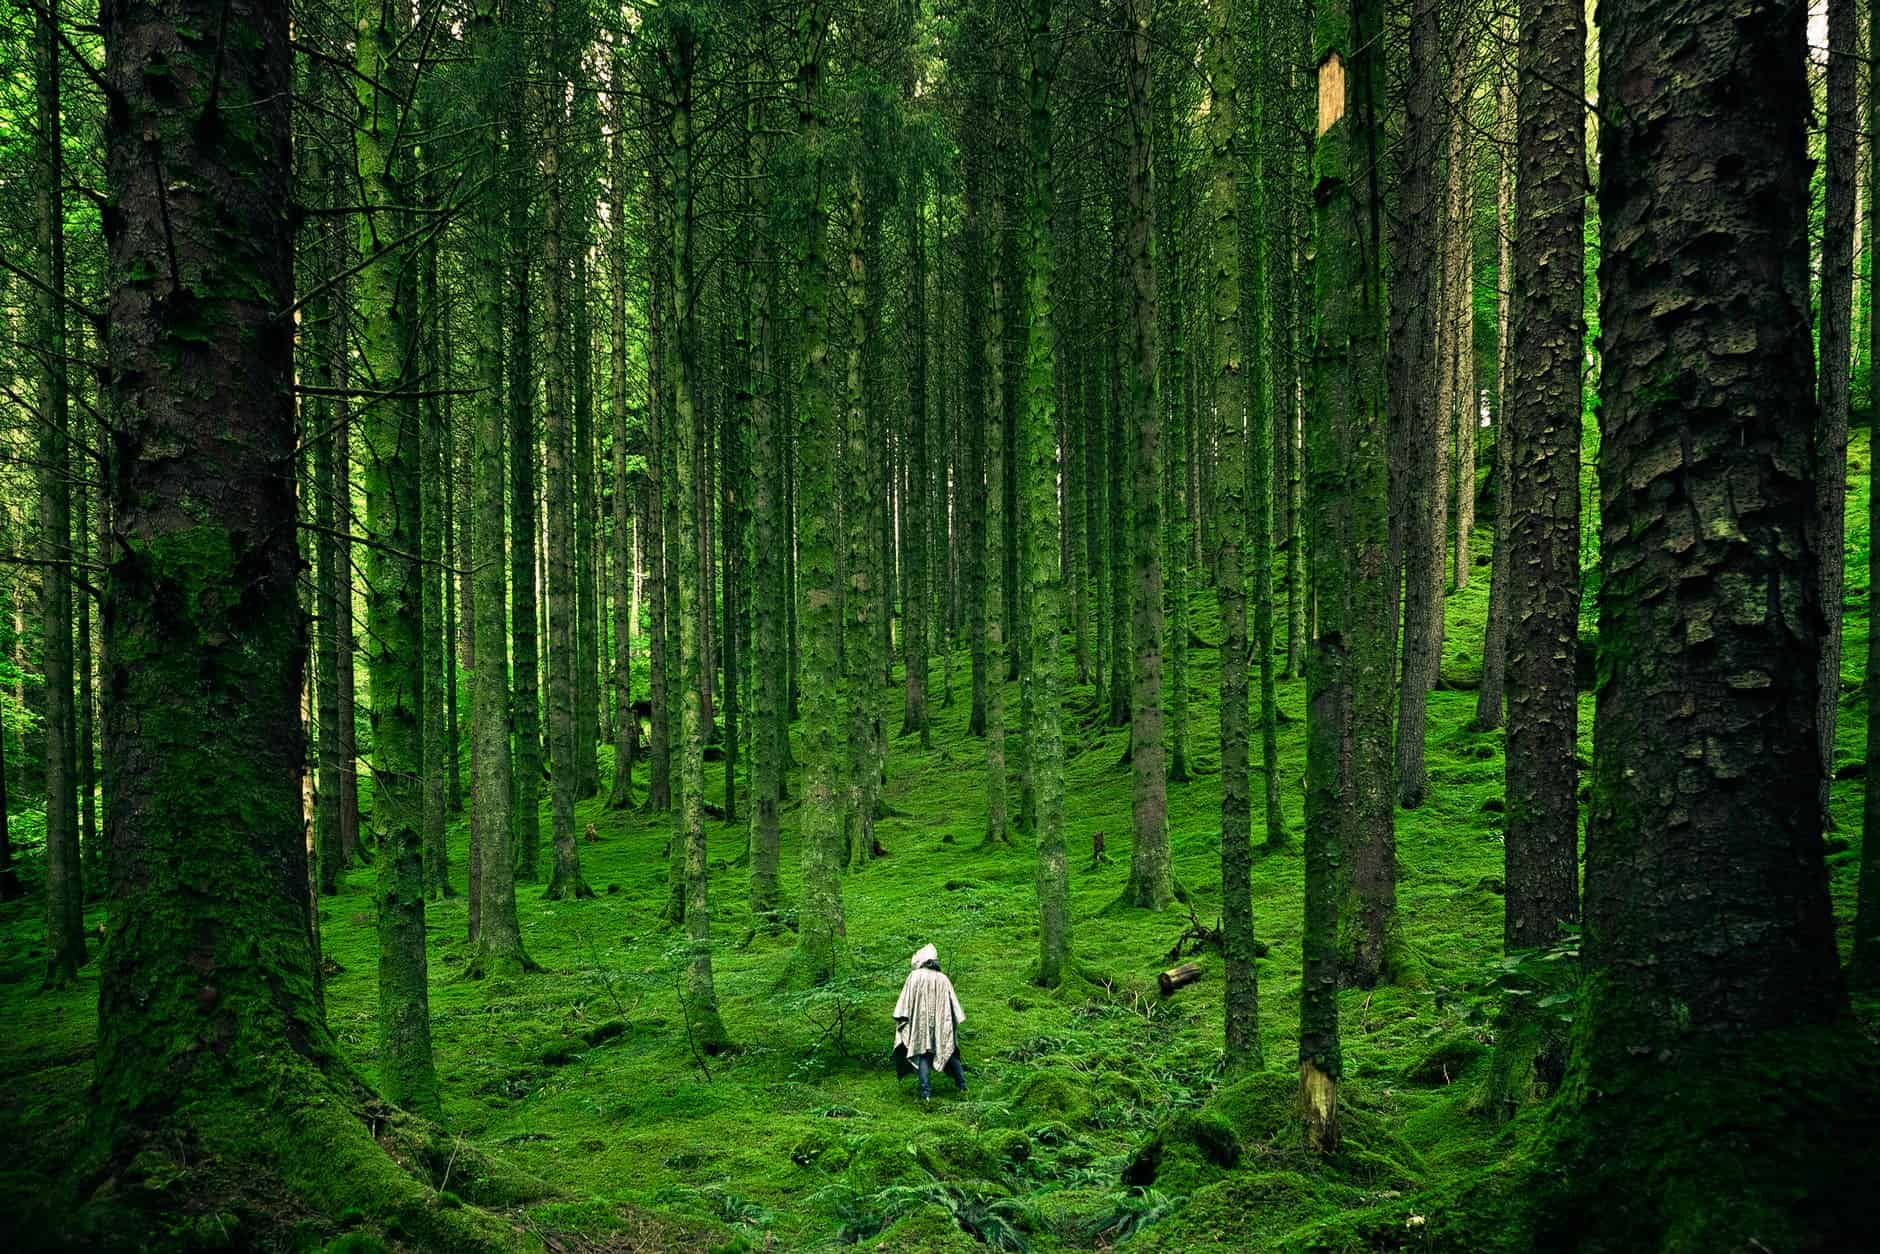 person walking between green forest trees